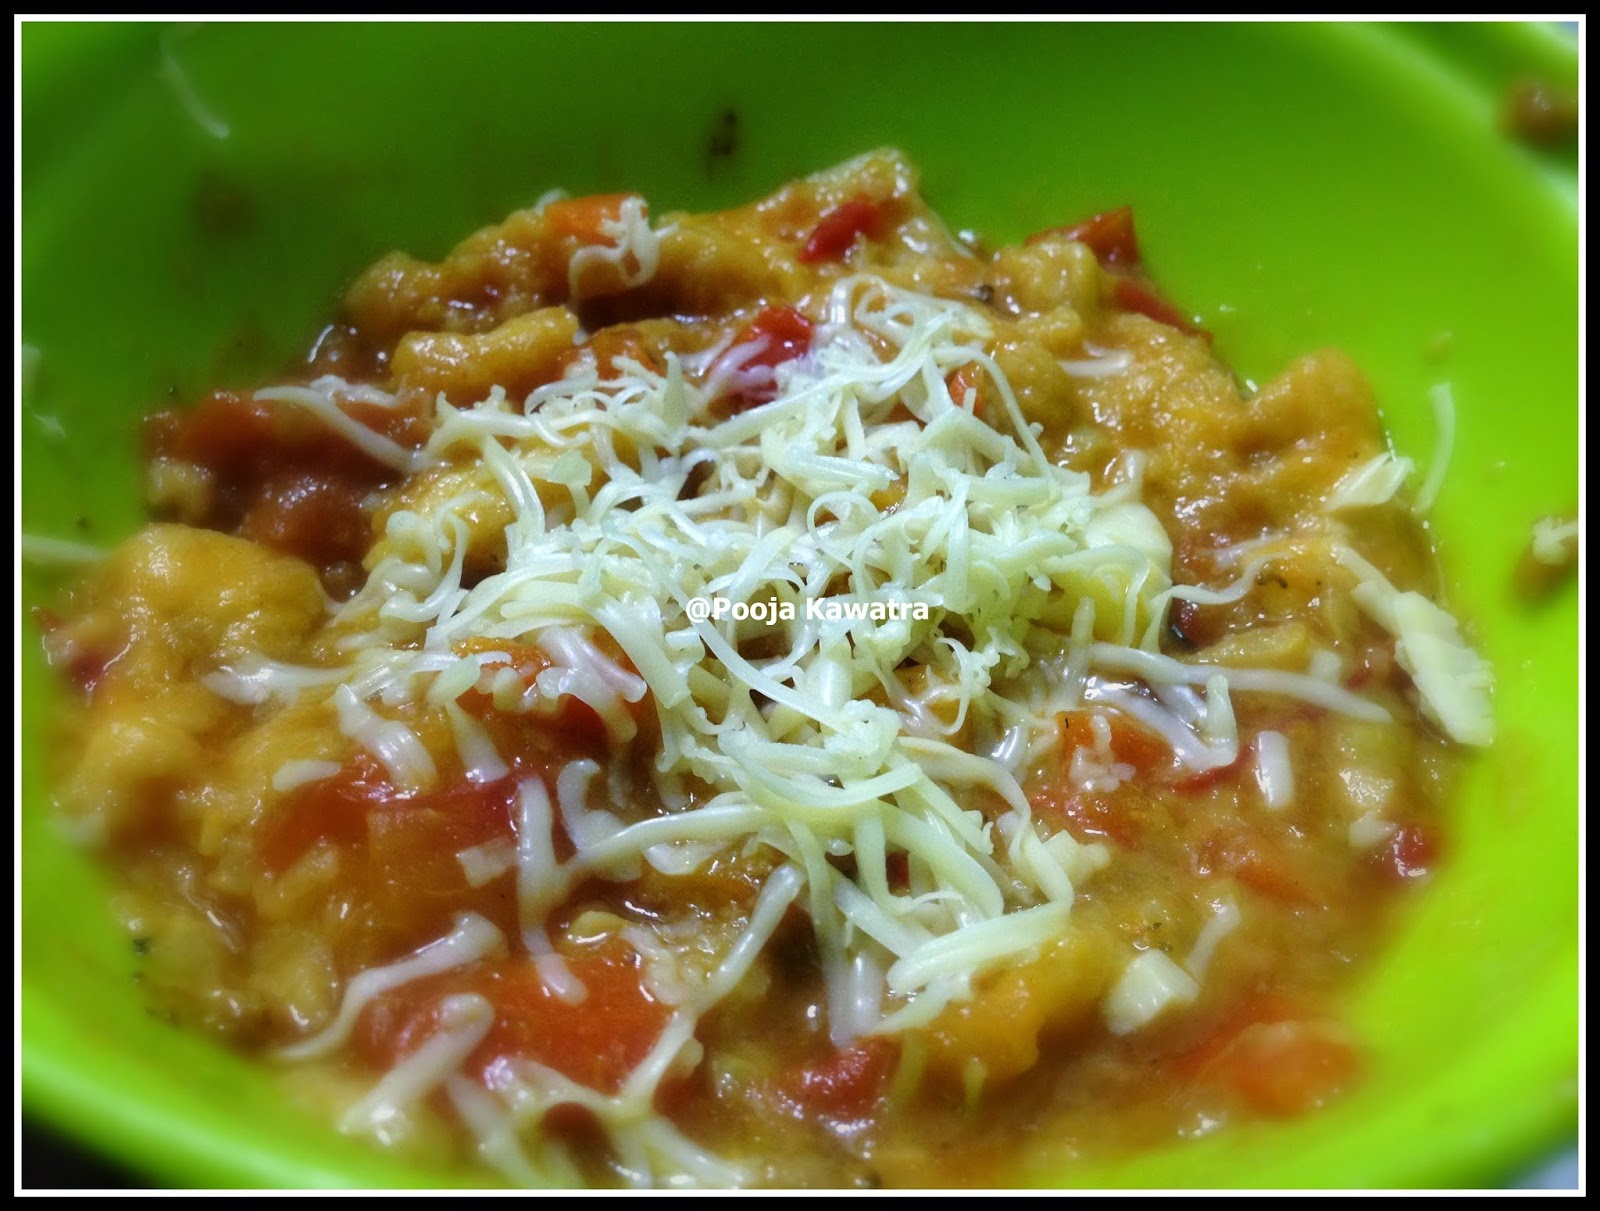 Pappa pomodoro italian bread soup mums and babies singapore i was searching for a healthy recipe using bread and saw quite a few different recipes slightly modified to suit my little one taste buds and came up with forumfinder Gallery